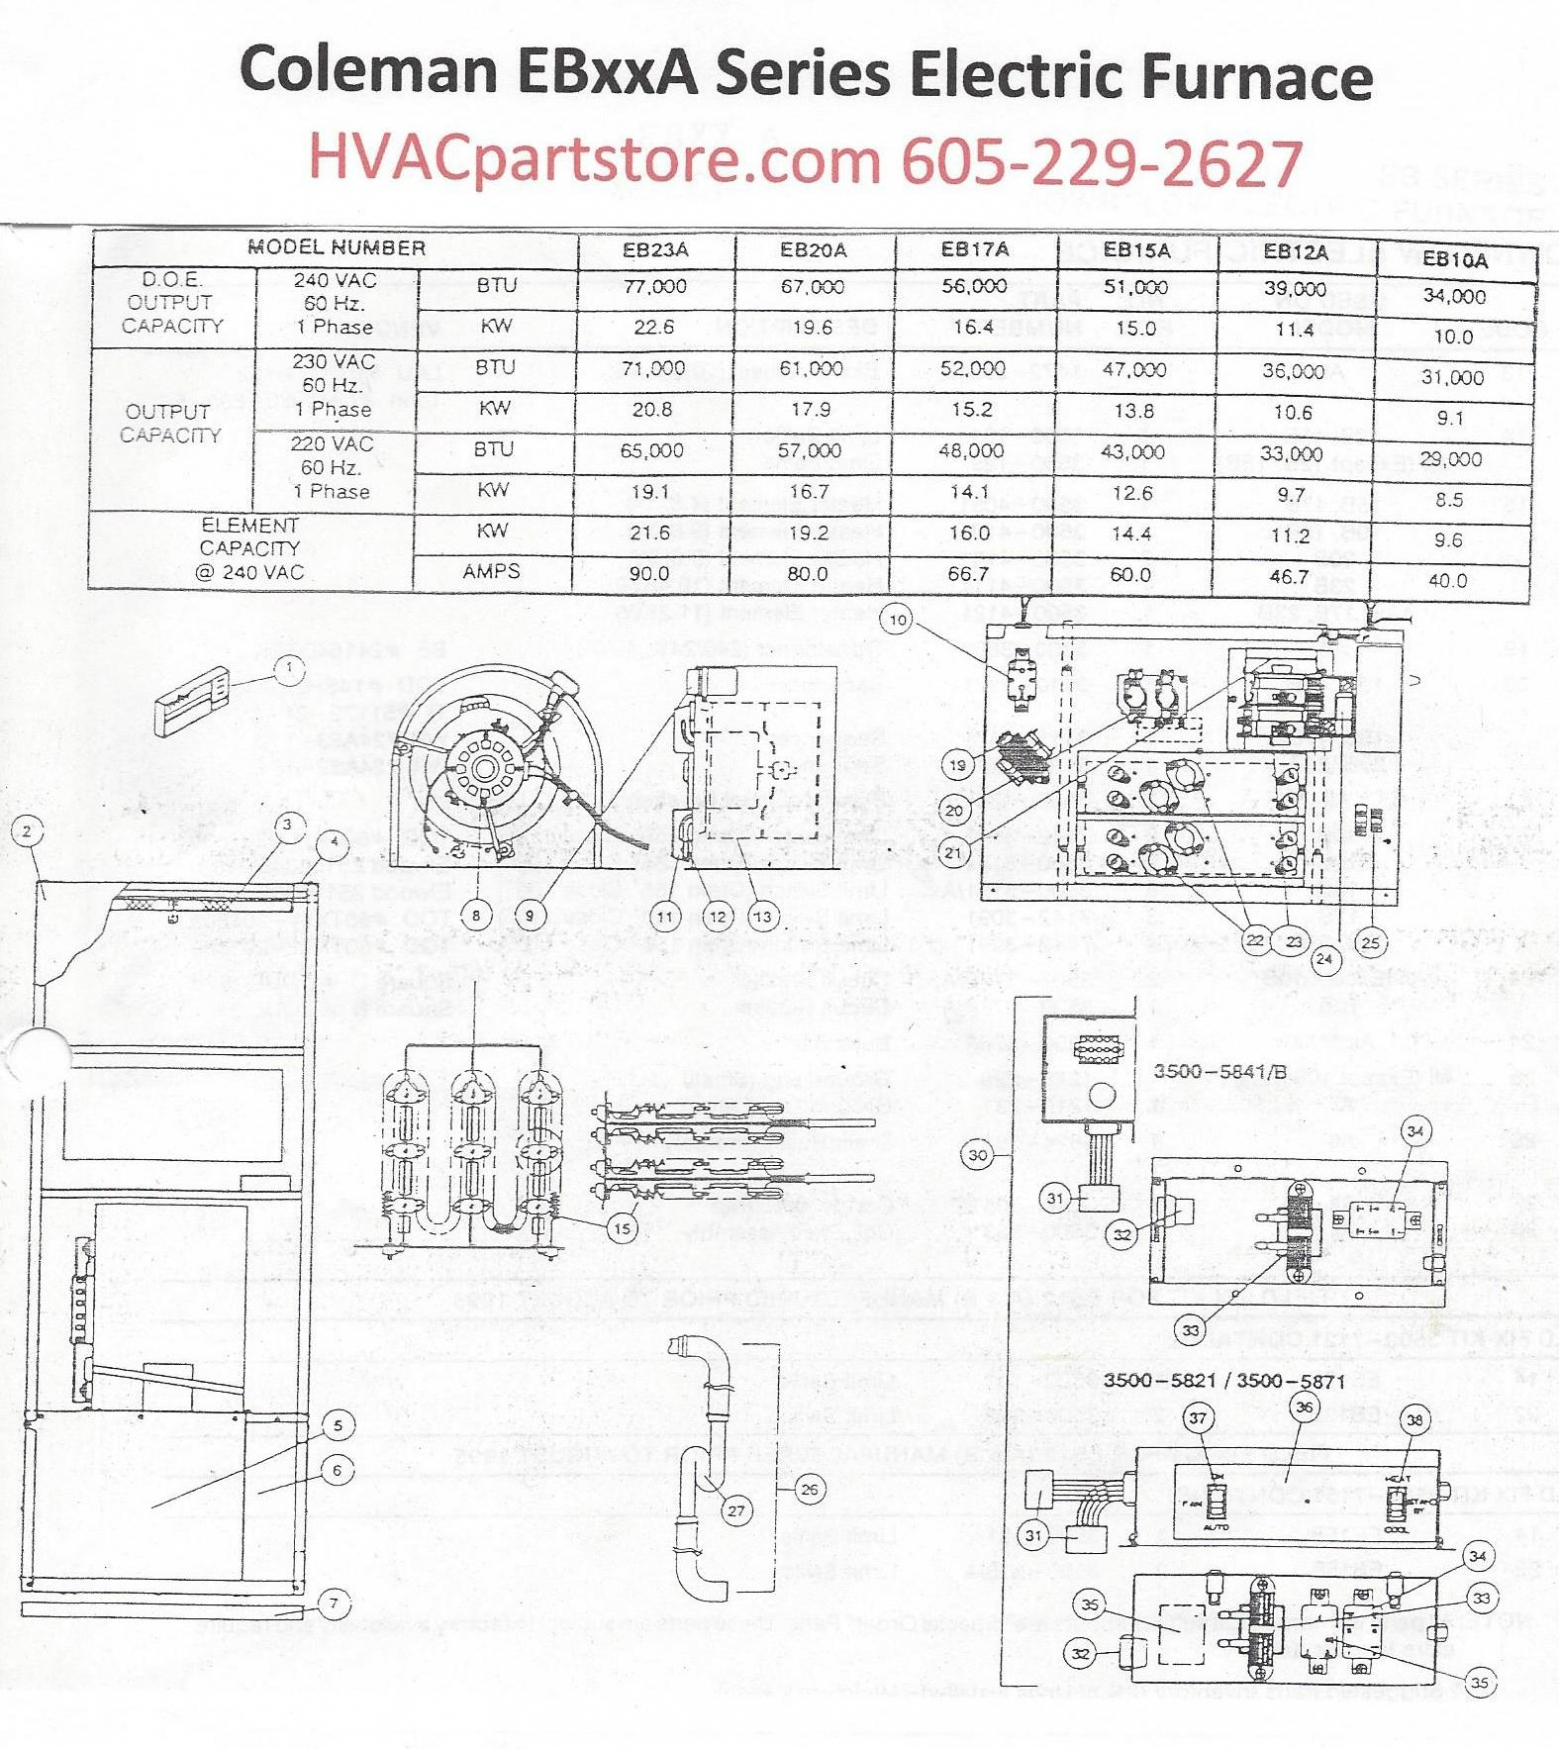 2 Wire Thermostat Wiring Diagram Heat Only – Nest Thermostat Wiring - Nest Thermostat Wiring Diagram Heat Only